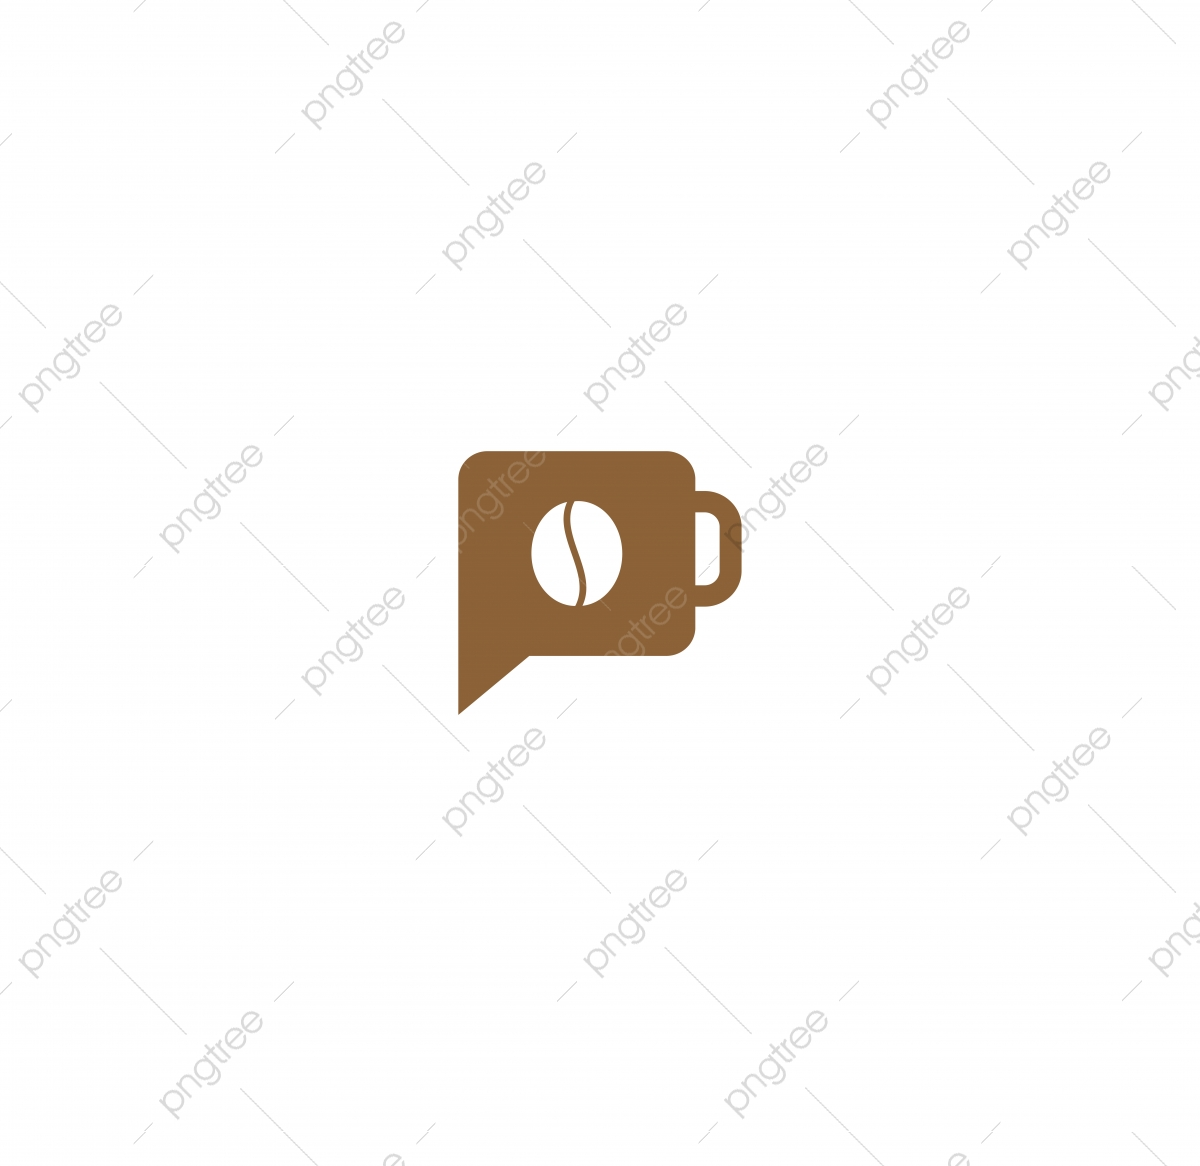 Coffee Chat Graphic Design Template Simple Illustration Tell Speak Communicate Png And Vector With Transparent Background For Free Download